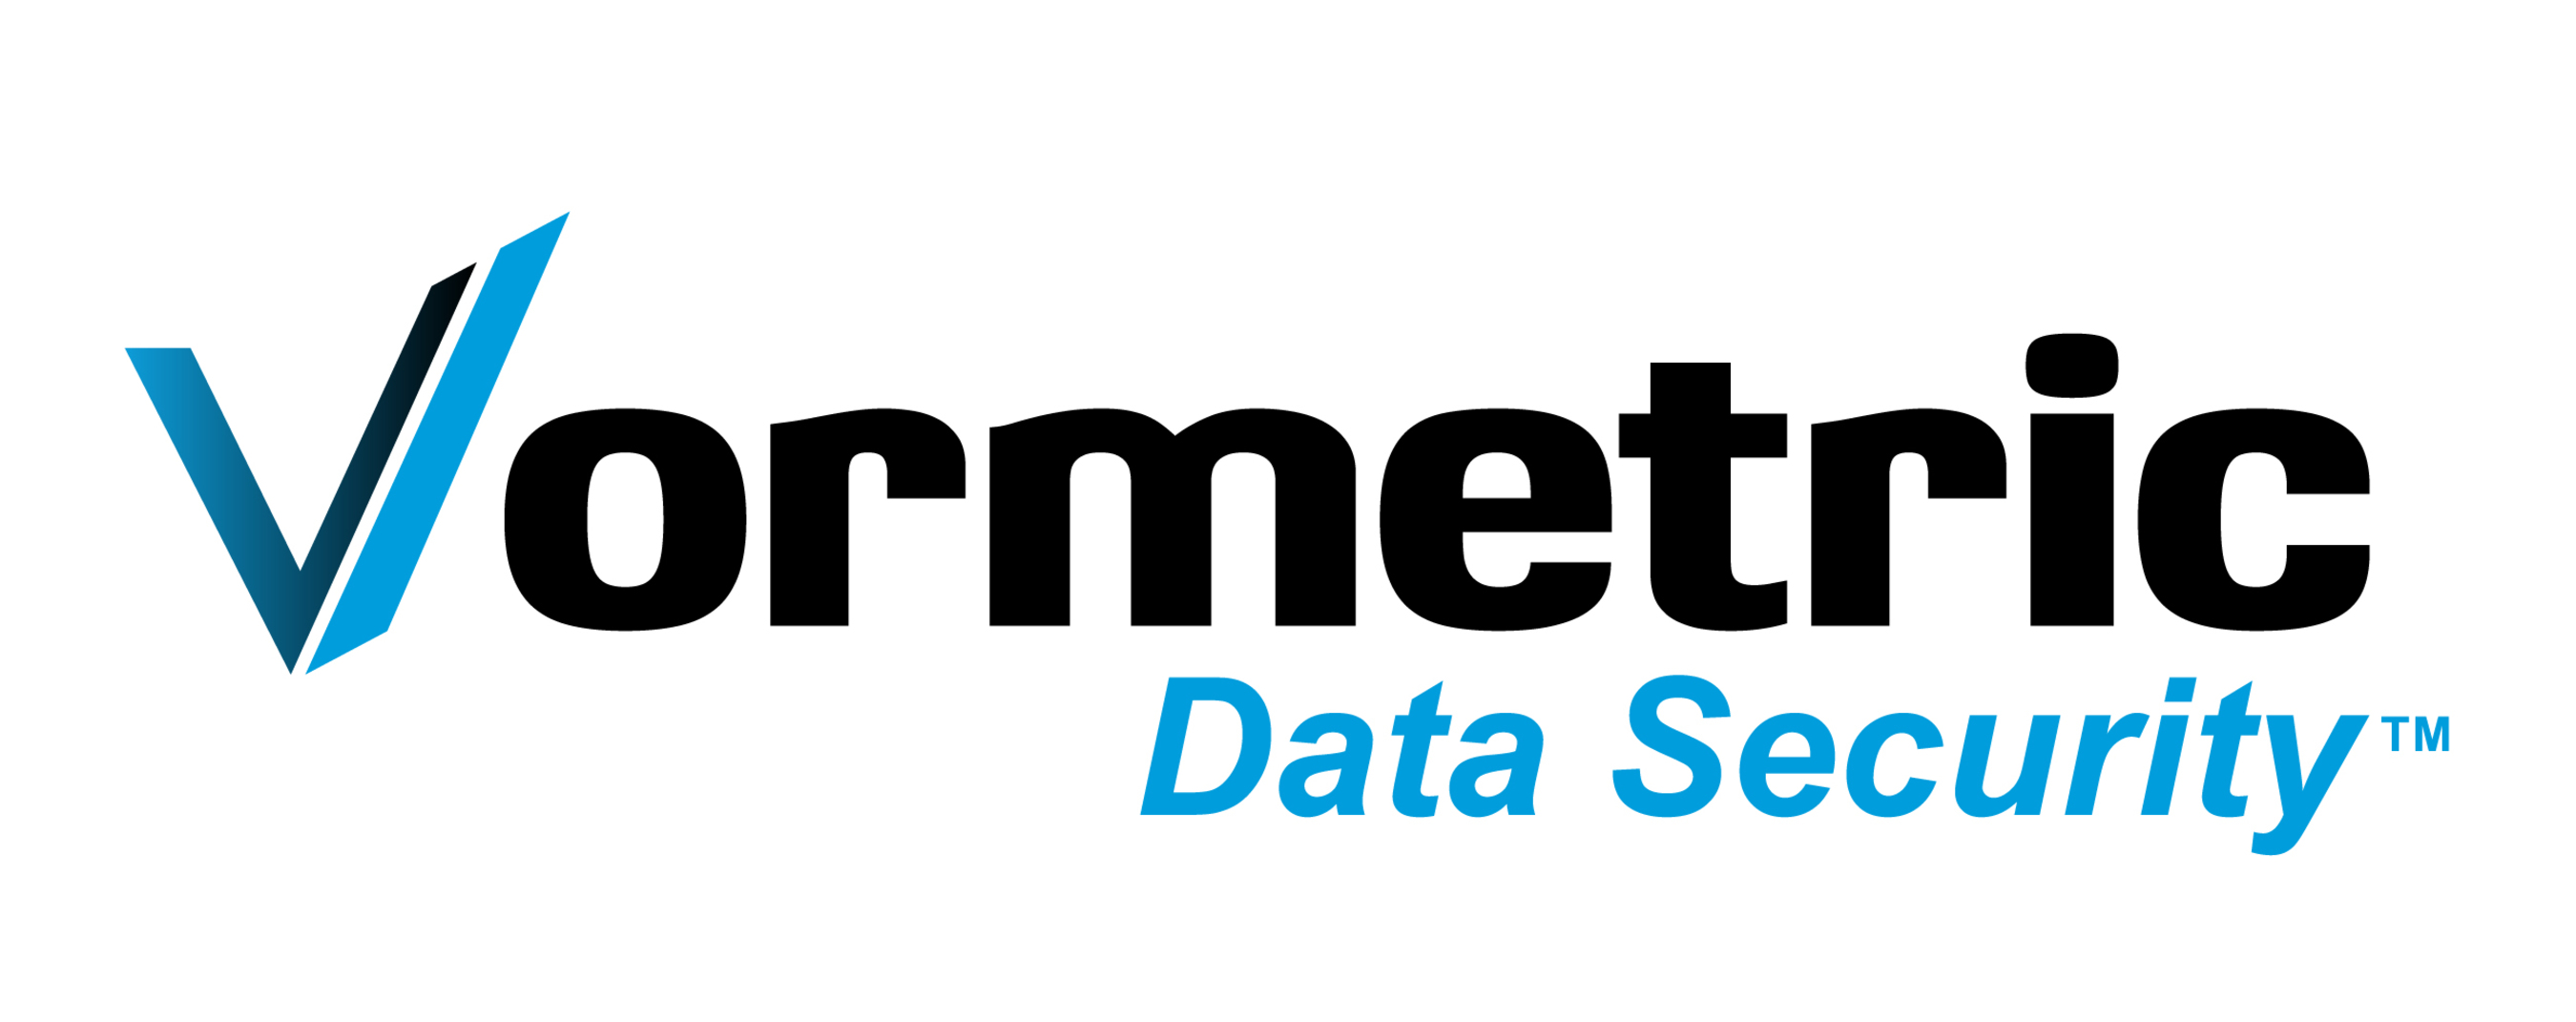 Vormetric and Hortonworks Partner to Deliver Pervasive Data-at-Rest Encryption and Data Security across Enterprise Hadoop Environments